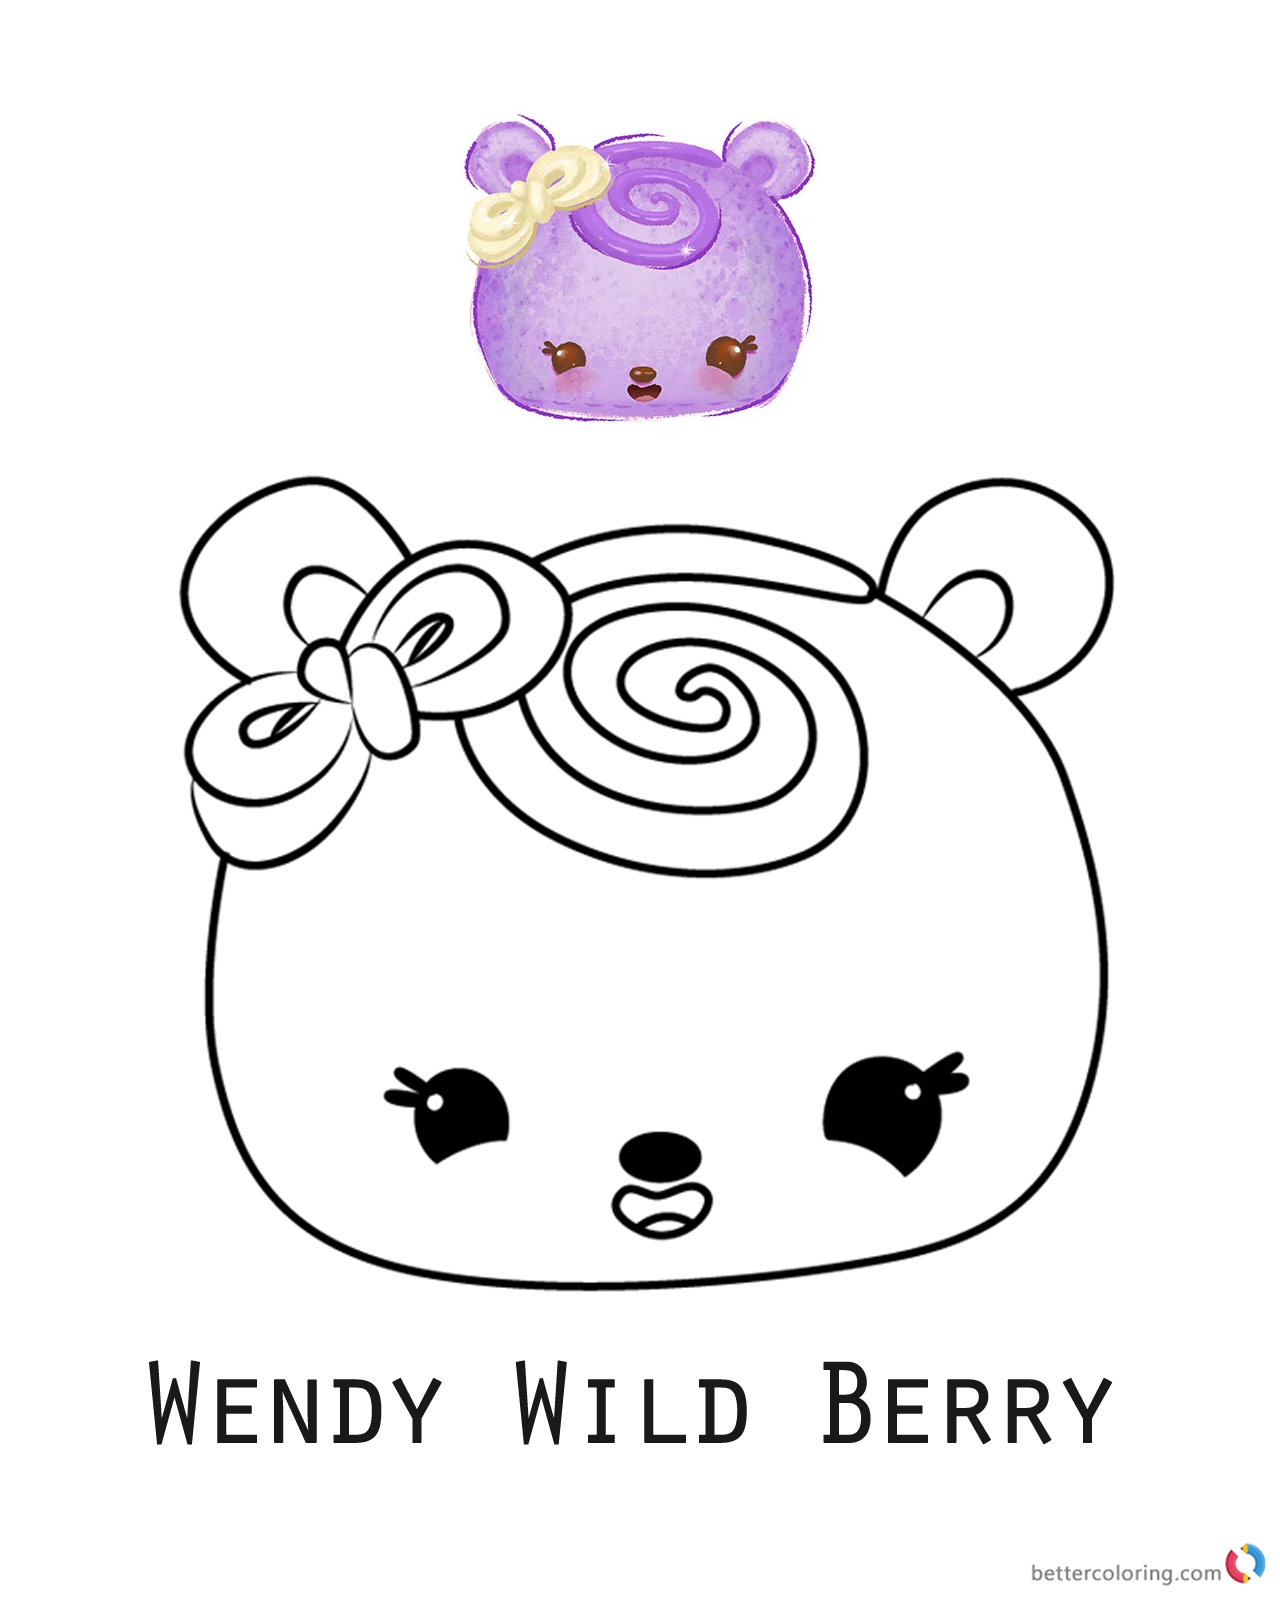 Num noms coloring pages series 1 wendy wild berry free for Num noms coloring pages free